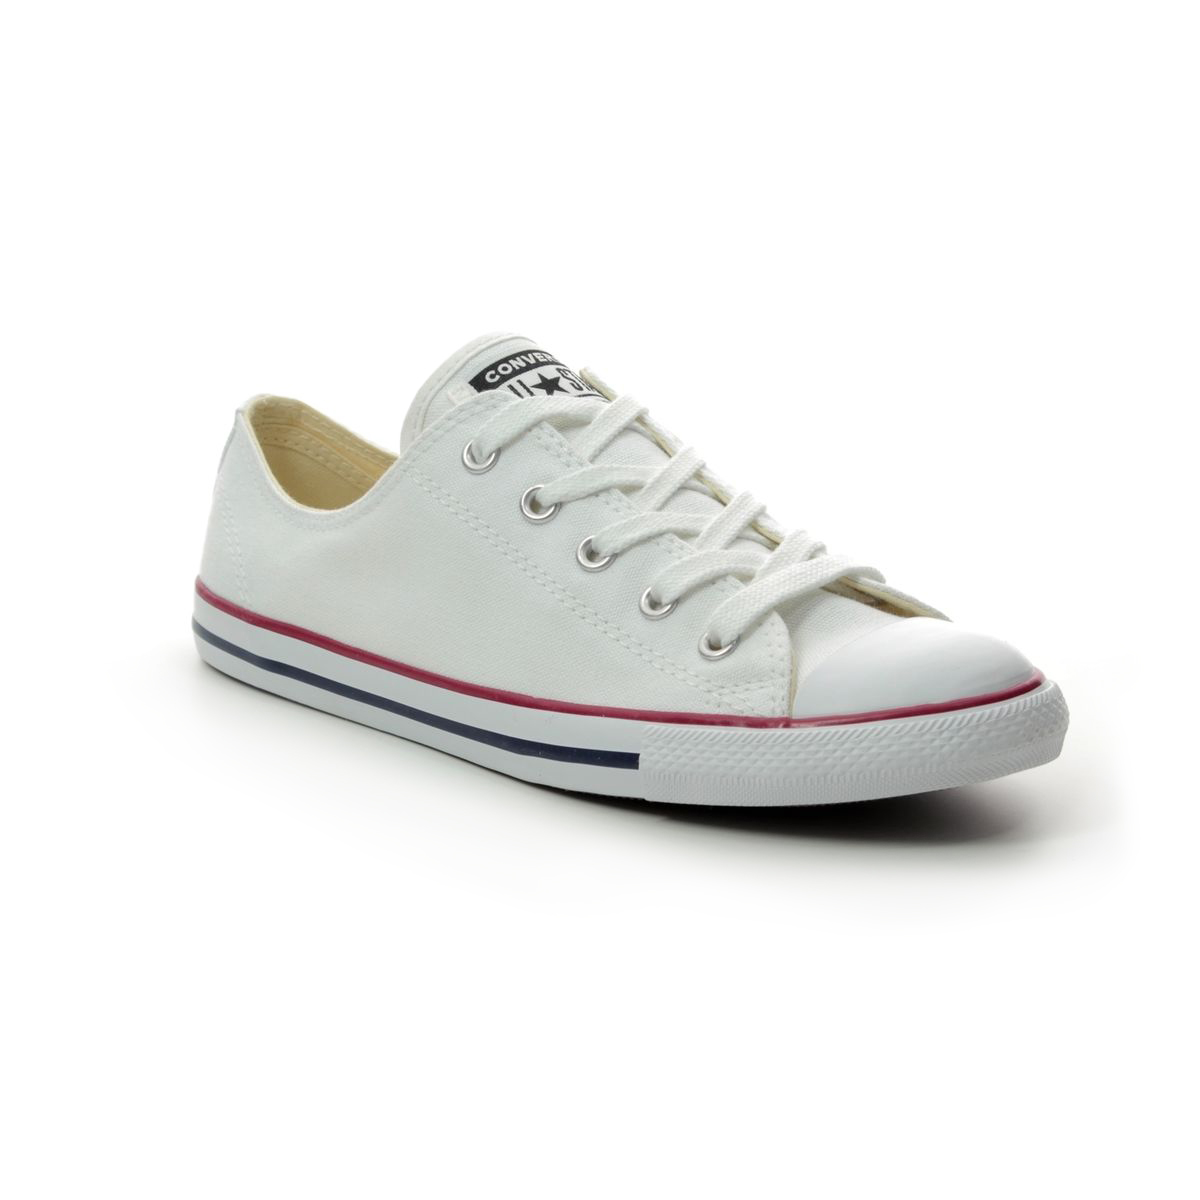 405eab1b3b93 Converse Trainers - White Red and Blue - 537204C ALL STAR DAINTY OX